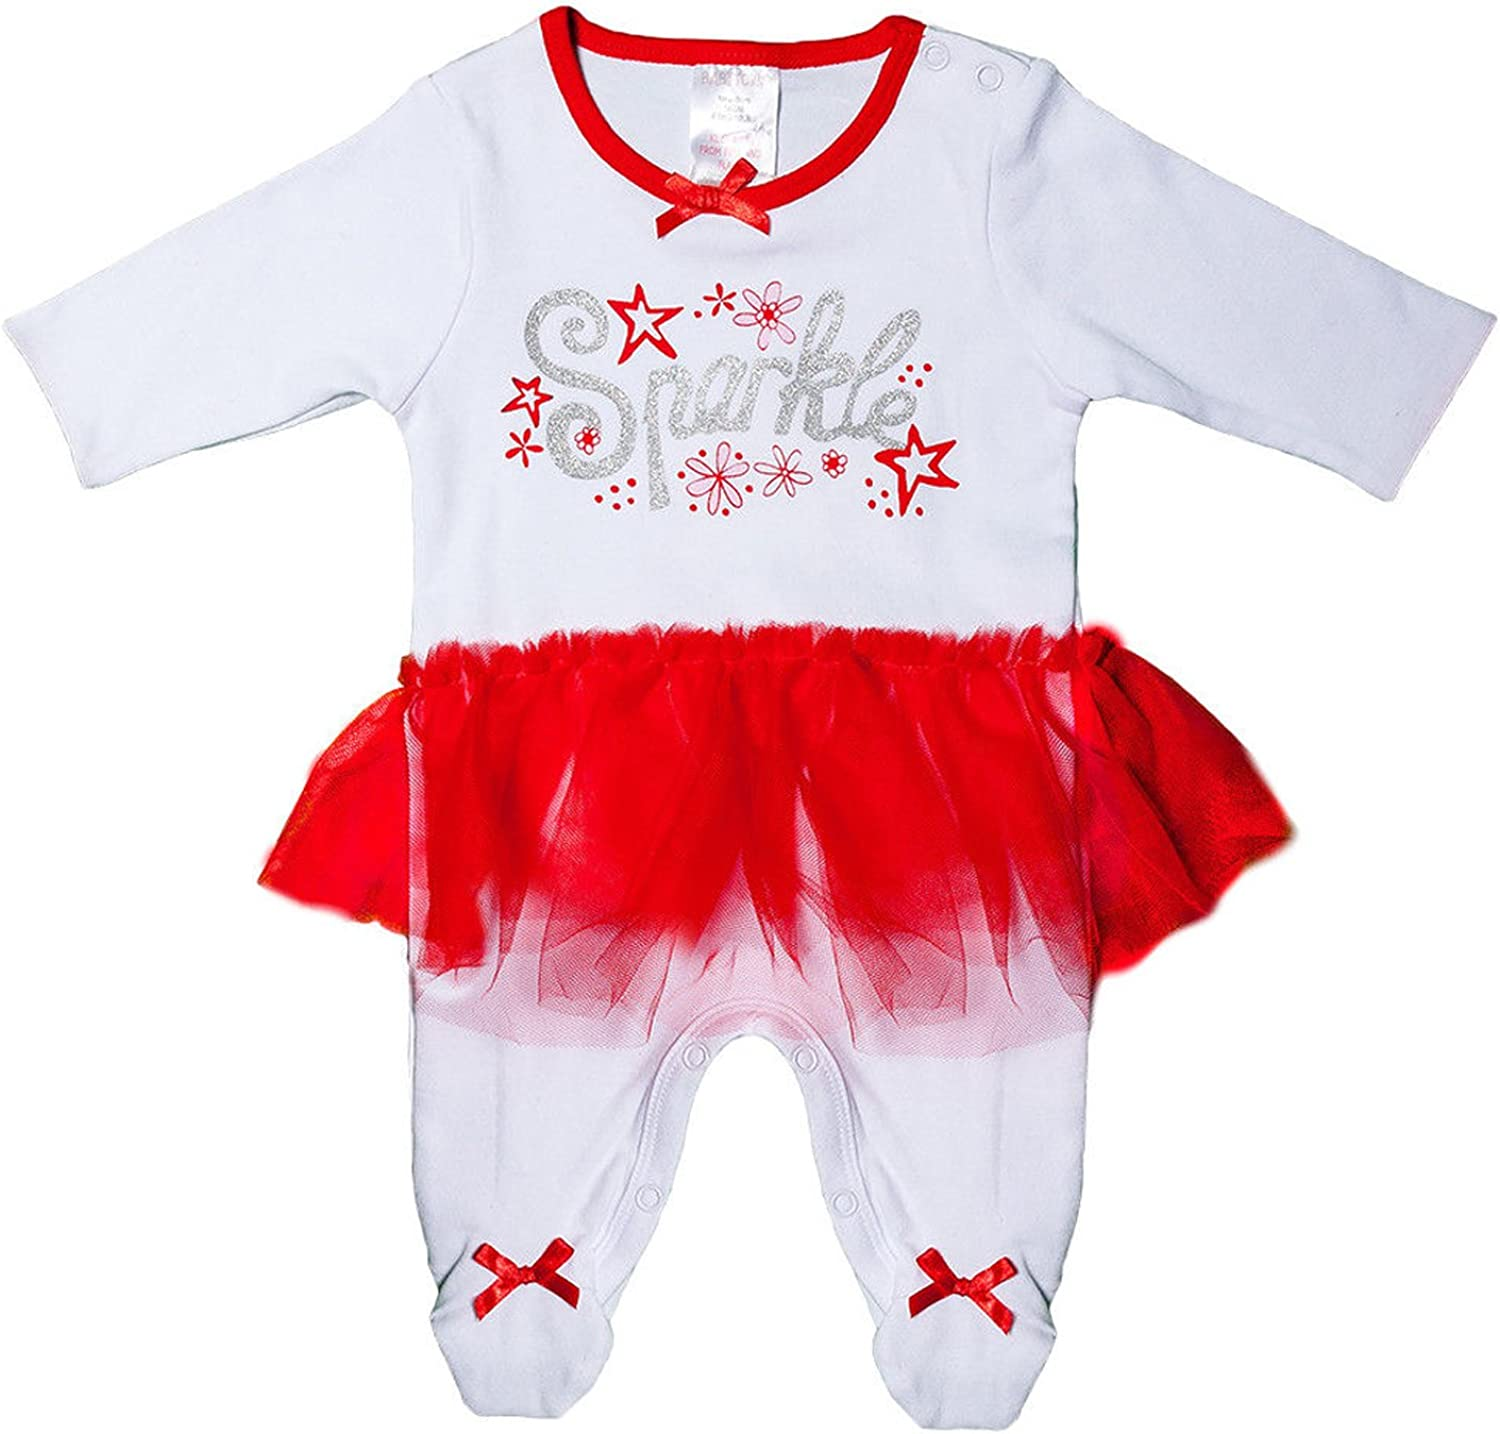 BABY TOWN Baby Girl Fairy Sparkle Christmas Cotton Sleepsuit with Tutu Newborn 9 Months